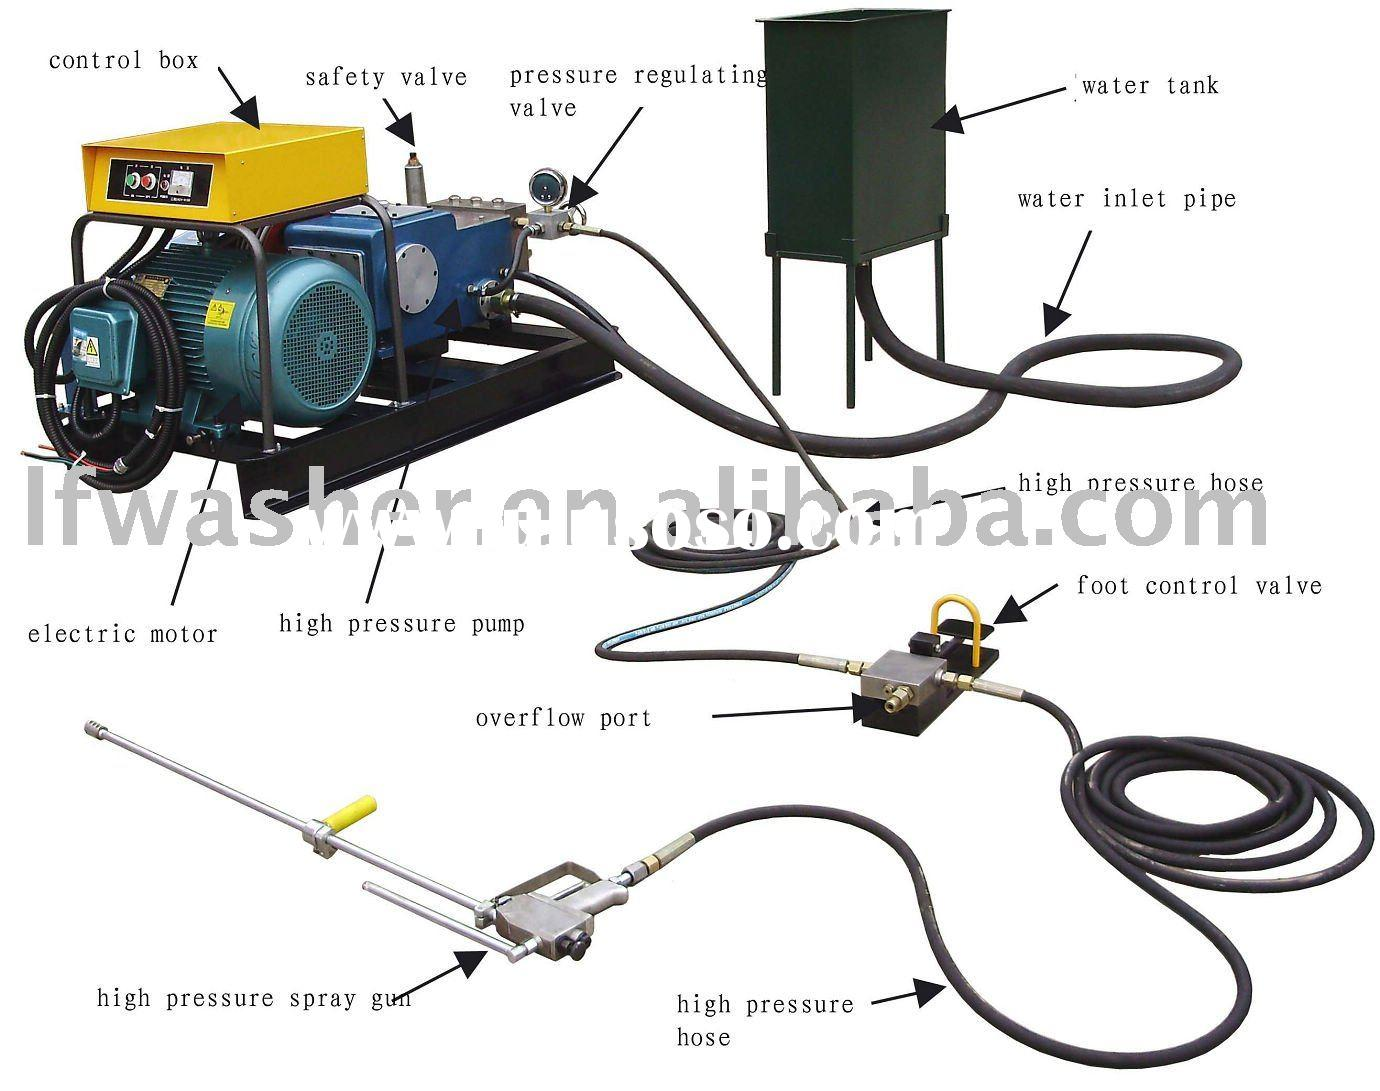 Industrial high pressure water jetting equipment, pressure test machine,hydraulic testing machine, t